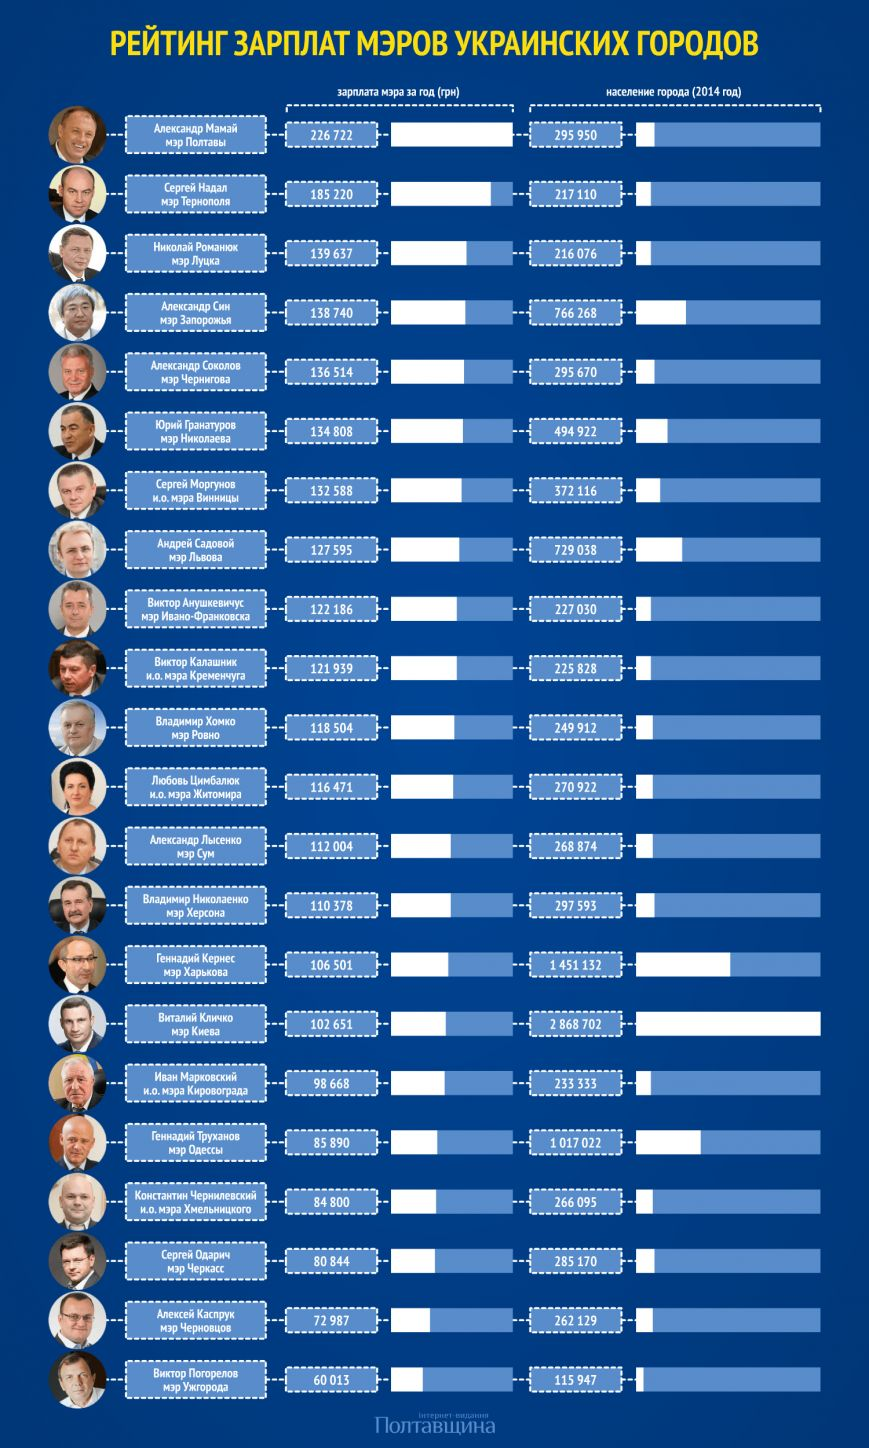 ukraine-city-mayor-salary-2014-0